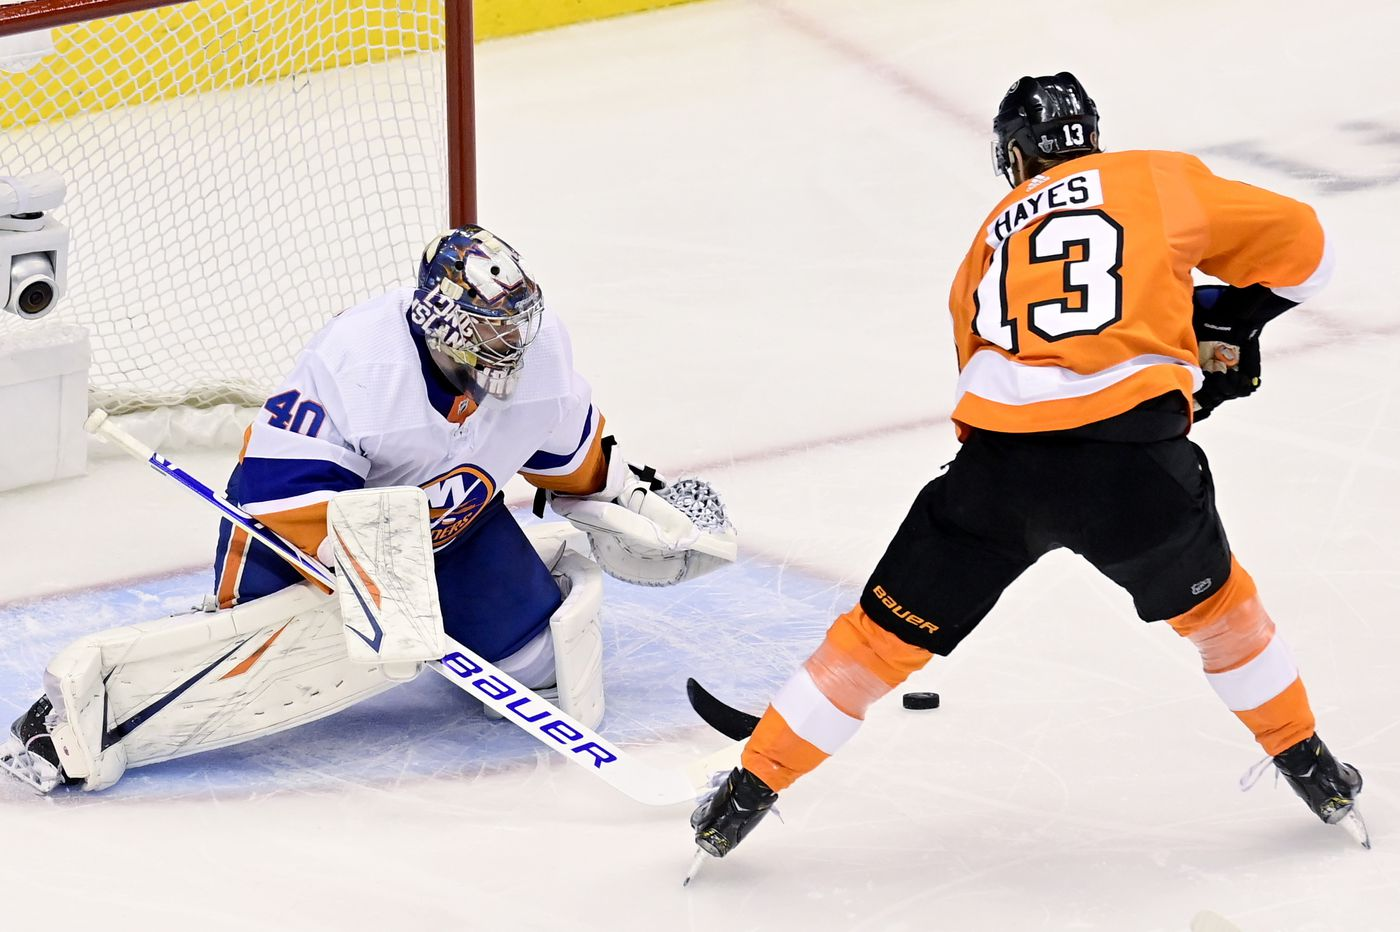 Islanders whip slow-starting Flyers, 4-0, to take opener in conference semifinals